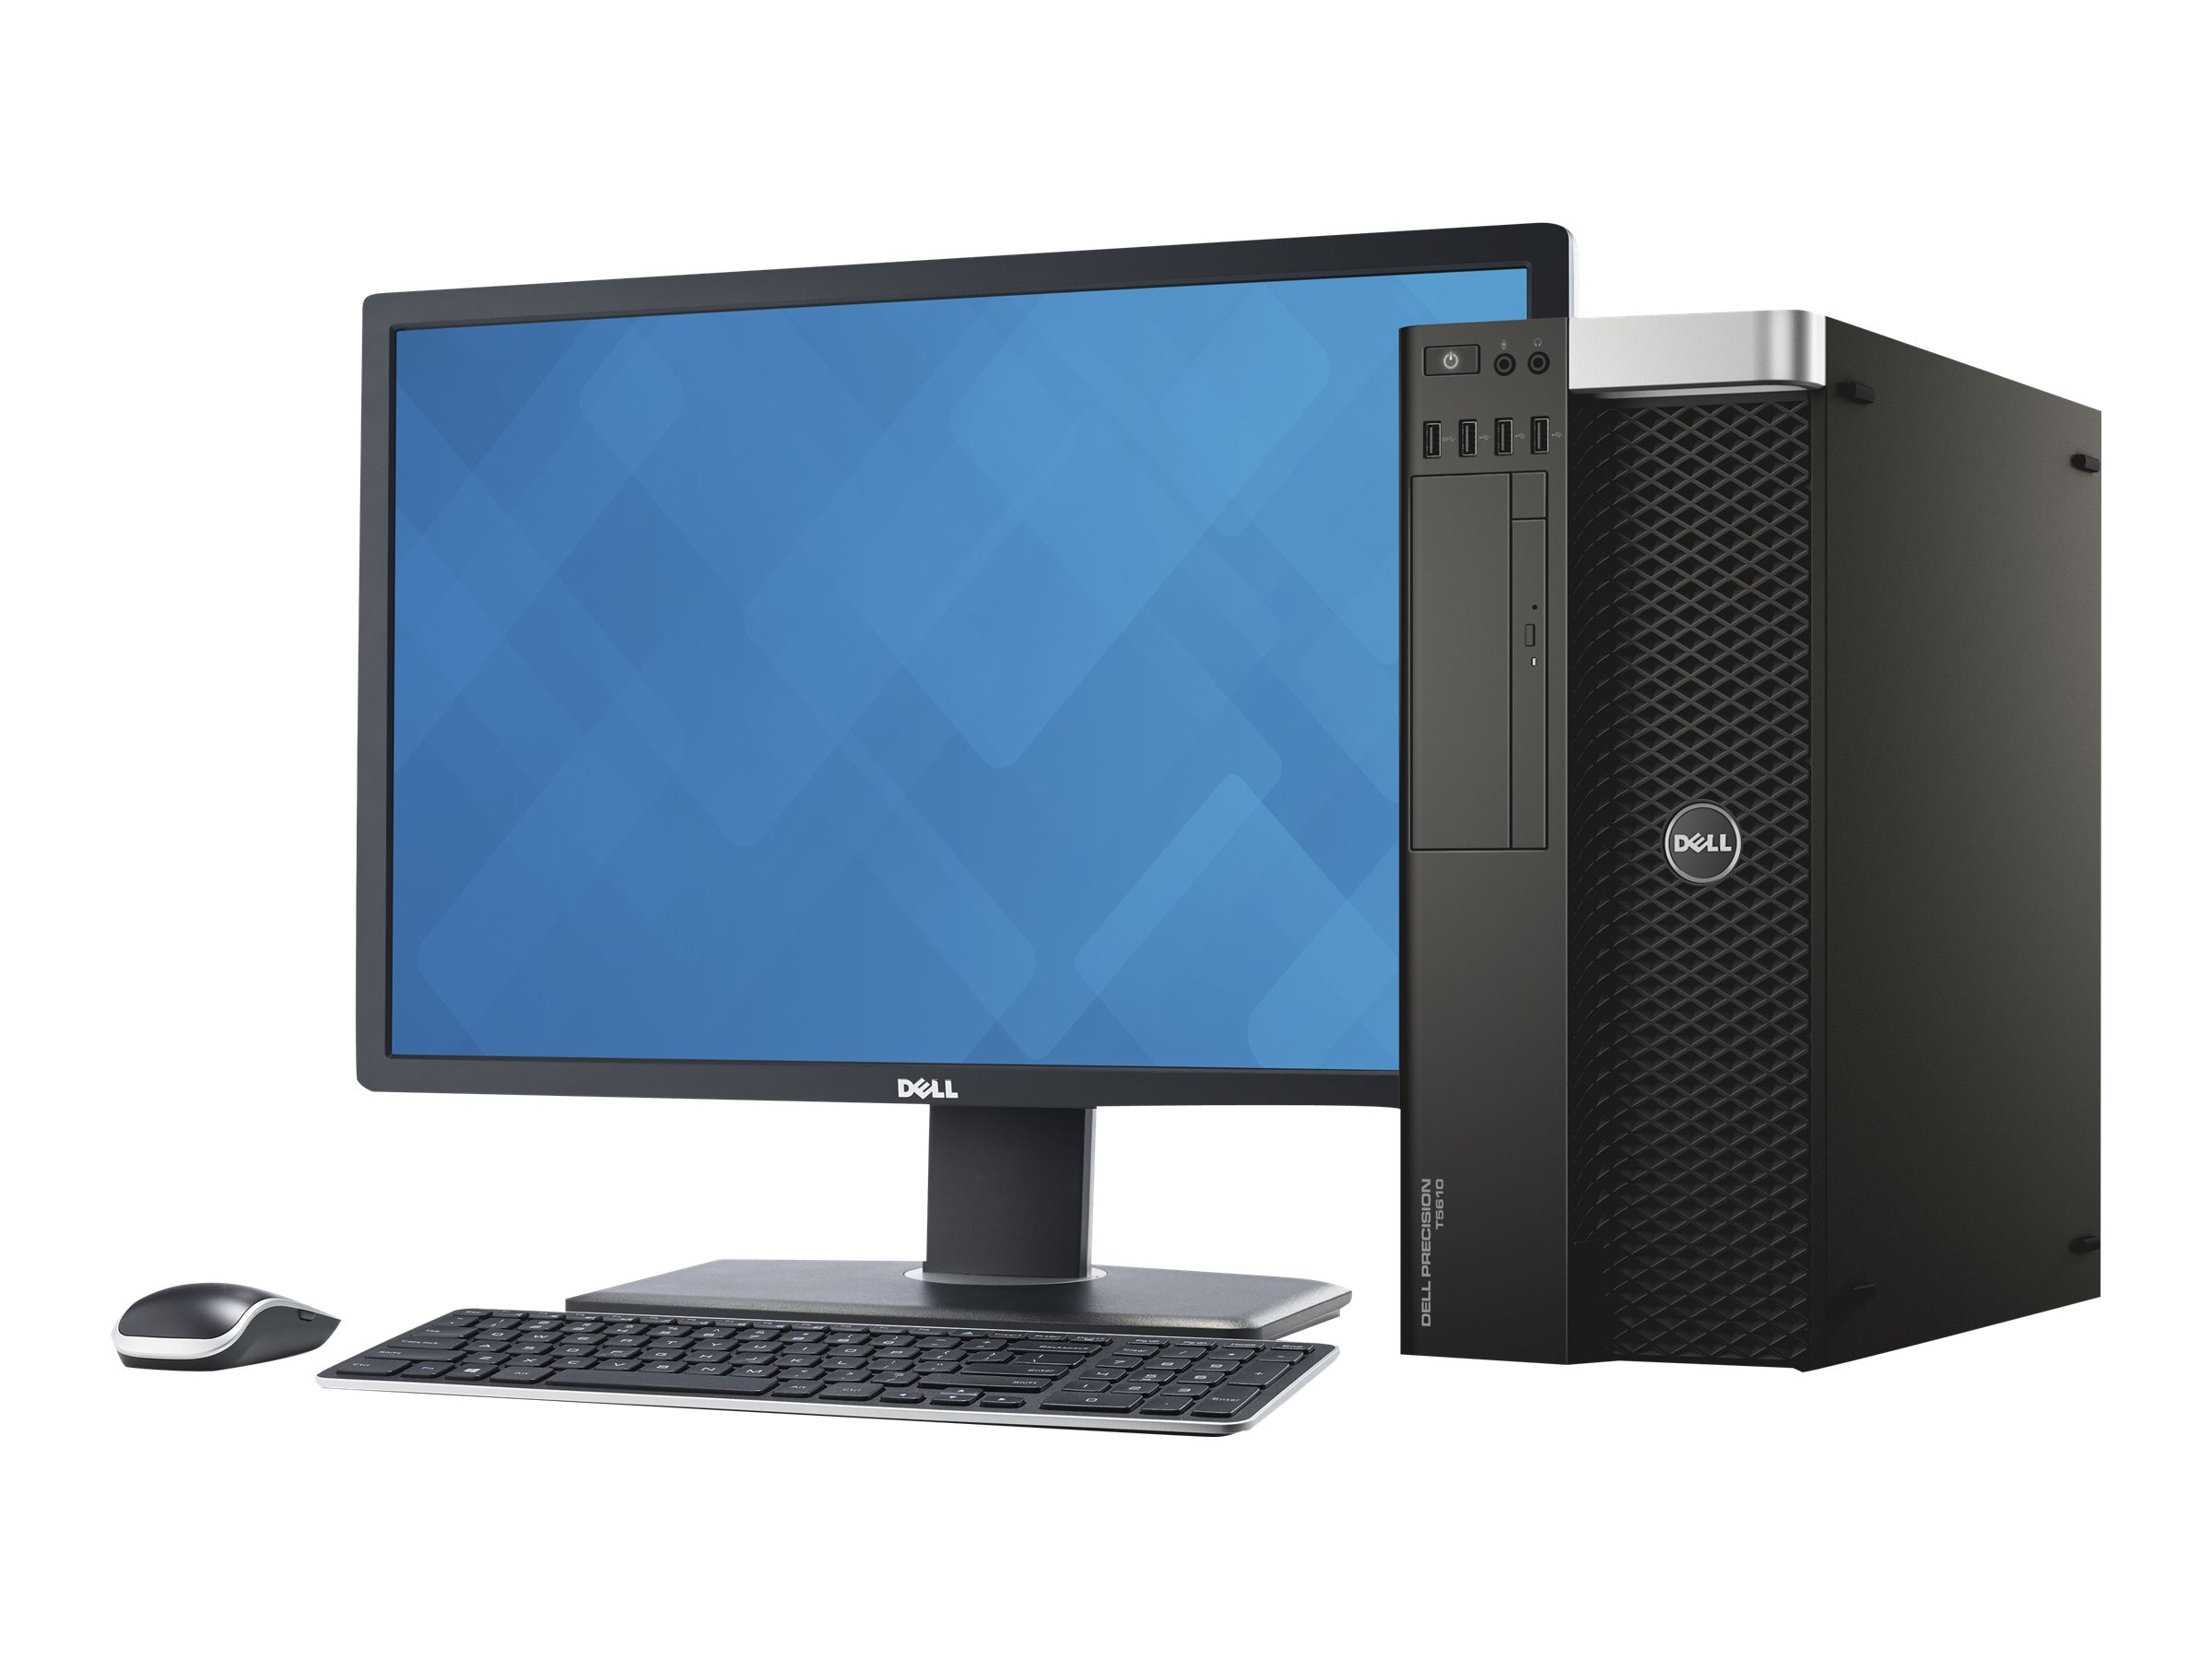 Dell Precision T5610 2.1GHz Xeon Microsoft Windows 7 Professional 64-bit Edition   Windows 8 Pro, 462-1200, 16395975, Workstations